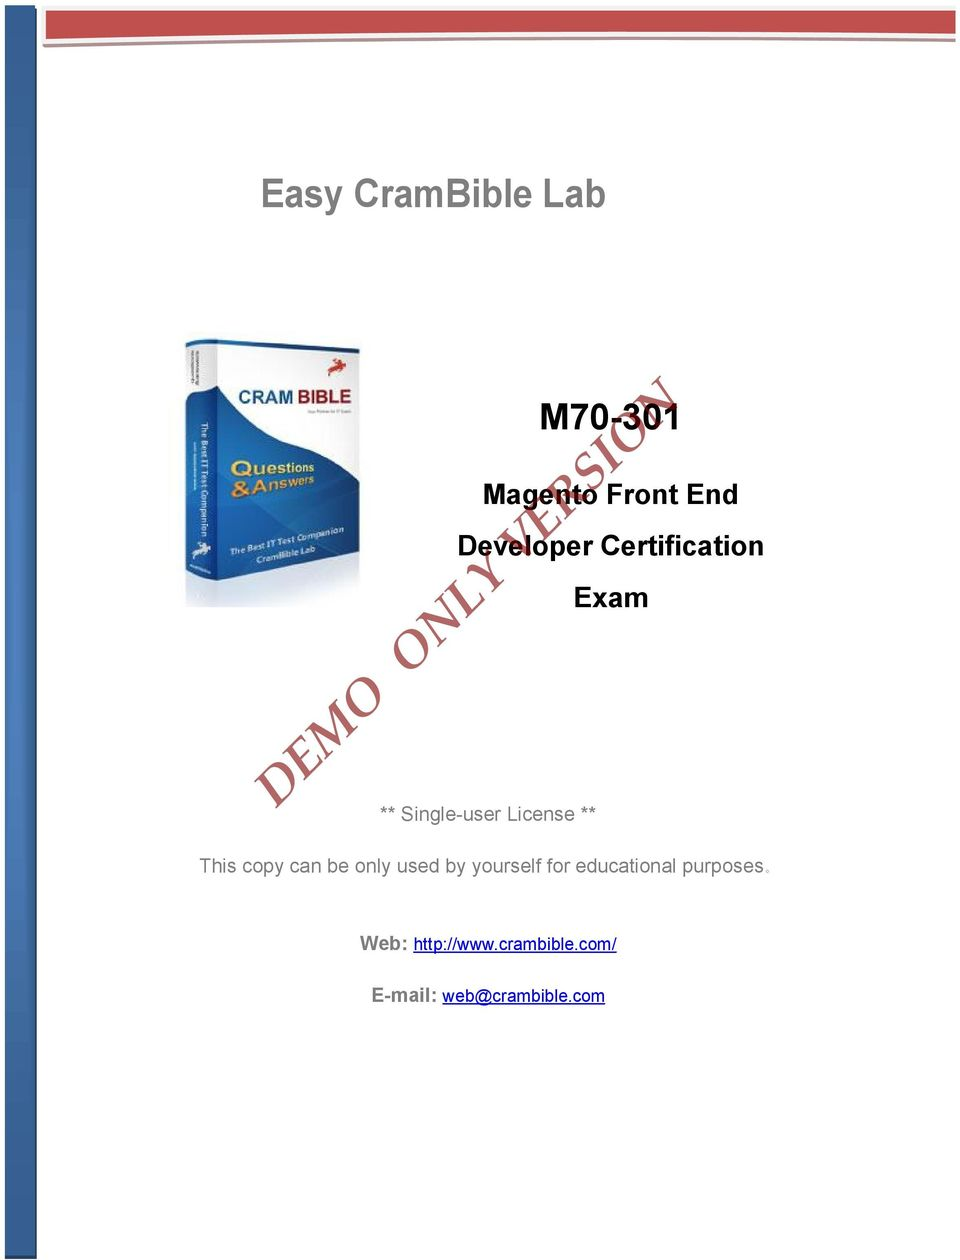 Demo Only Version Easy Crambible Lab M Magento Front End Developer